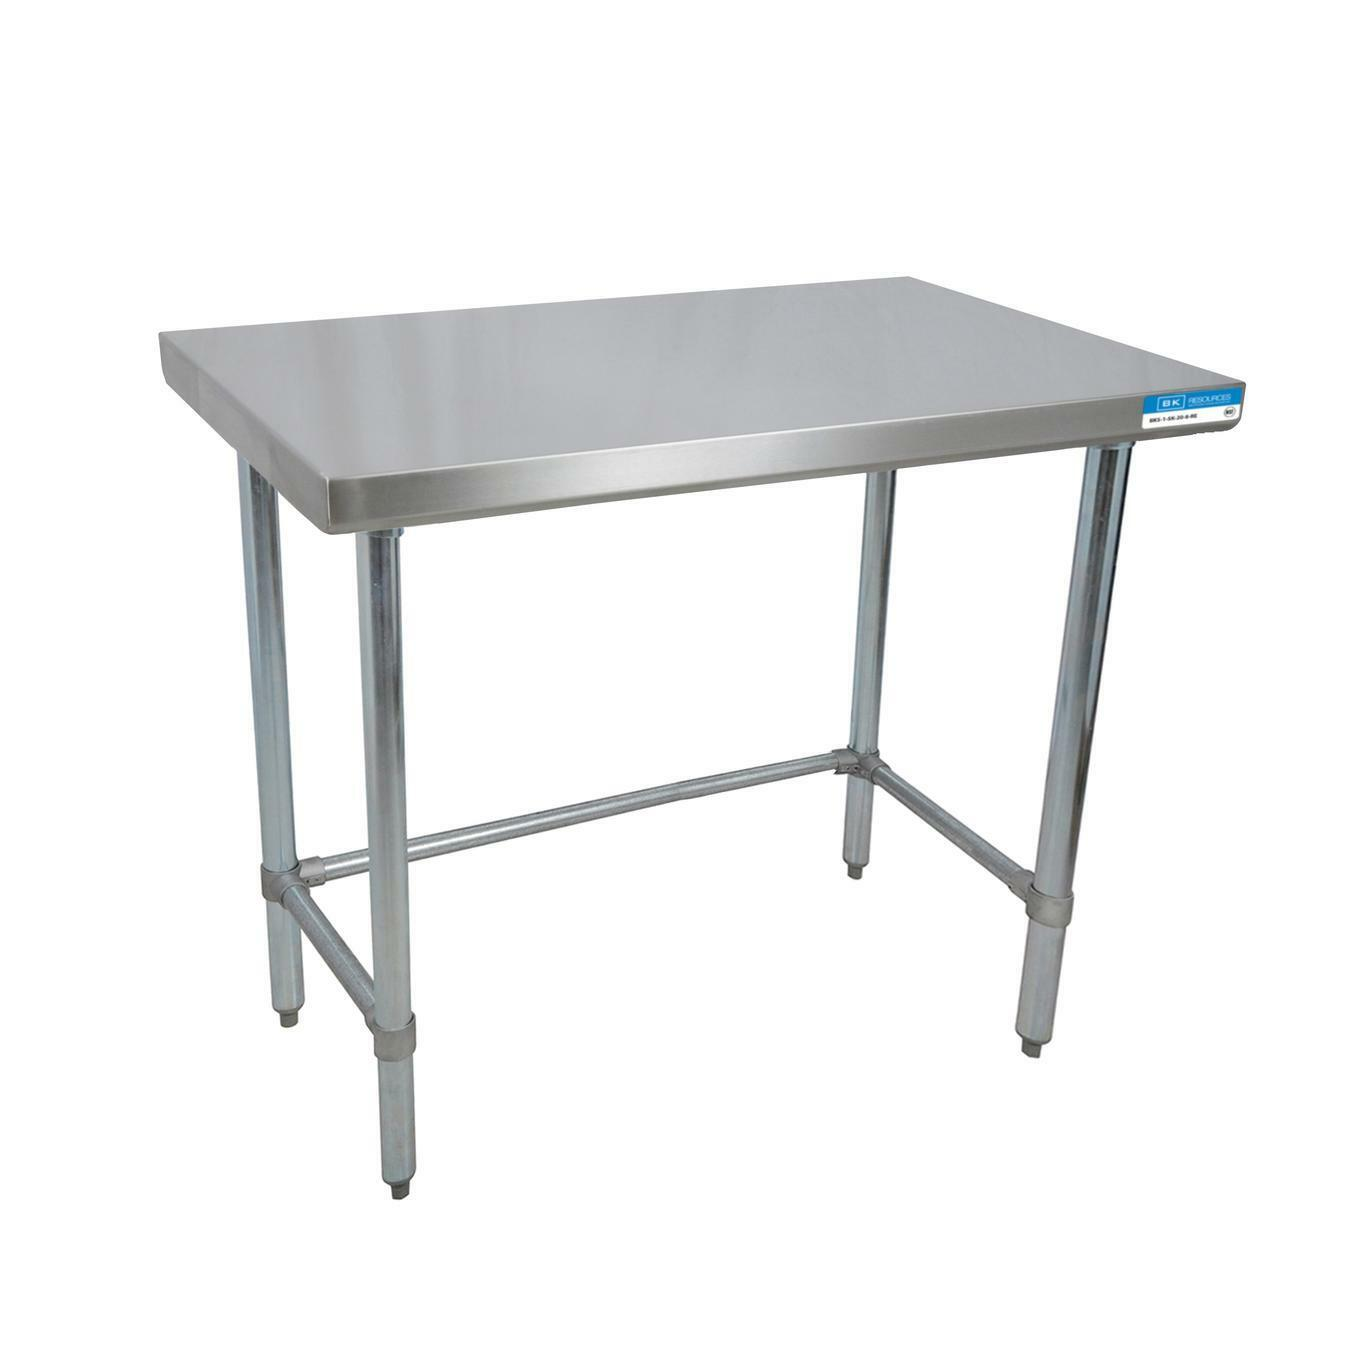 Bk Resources W X D Gauge Stainless Steel Open Base Work - 16 gauge stainless steel work table